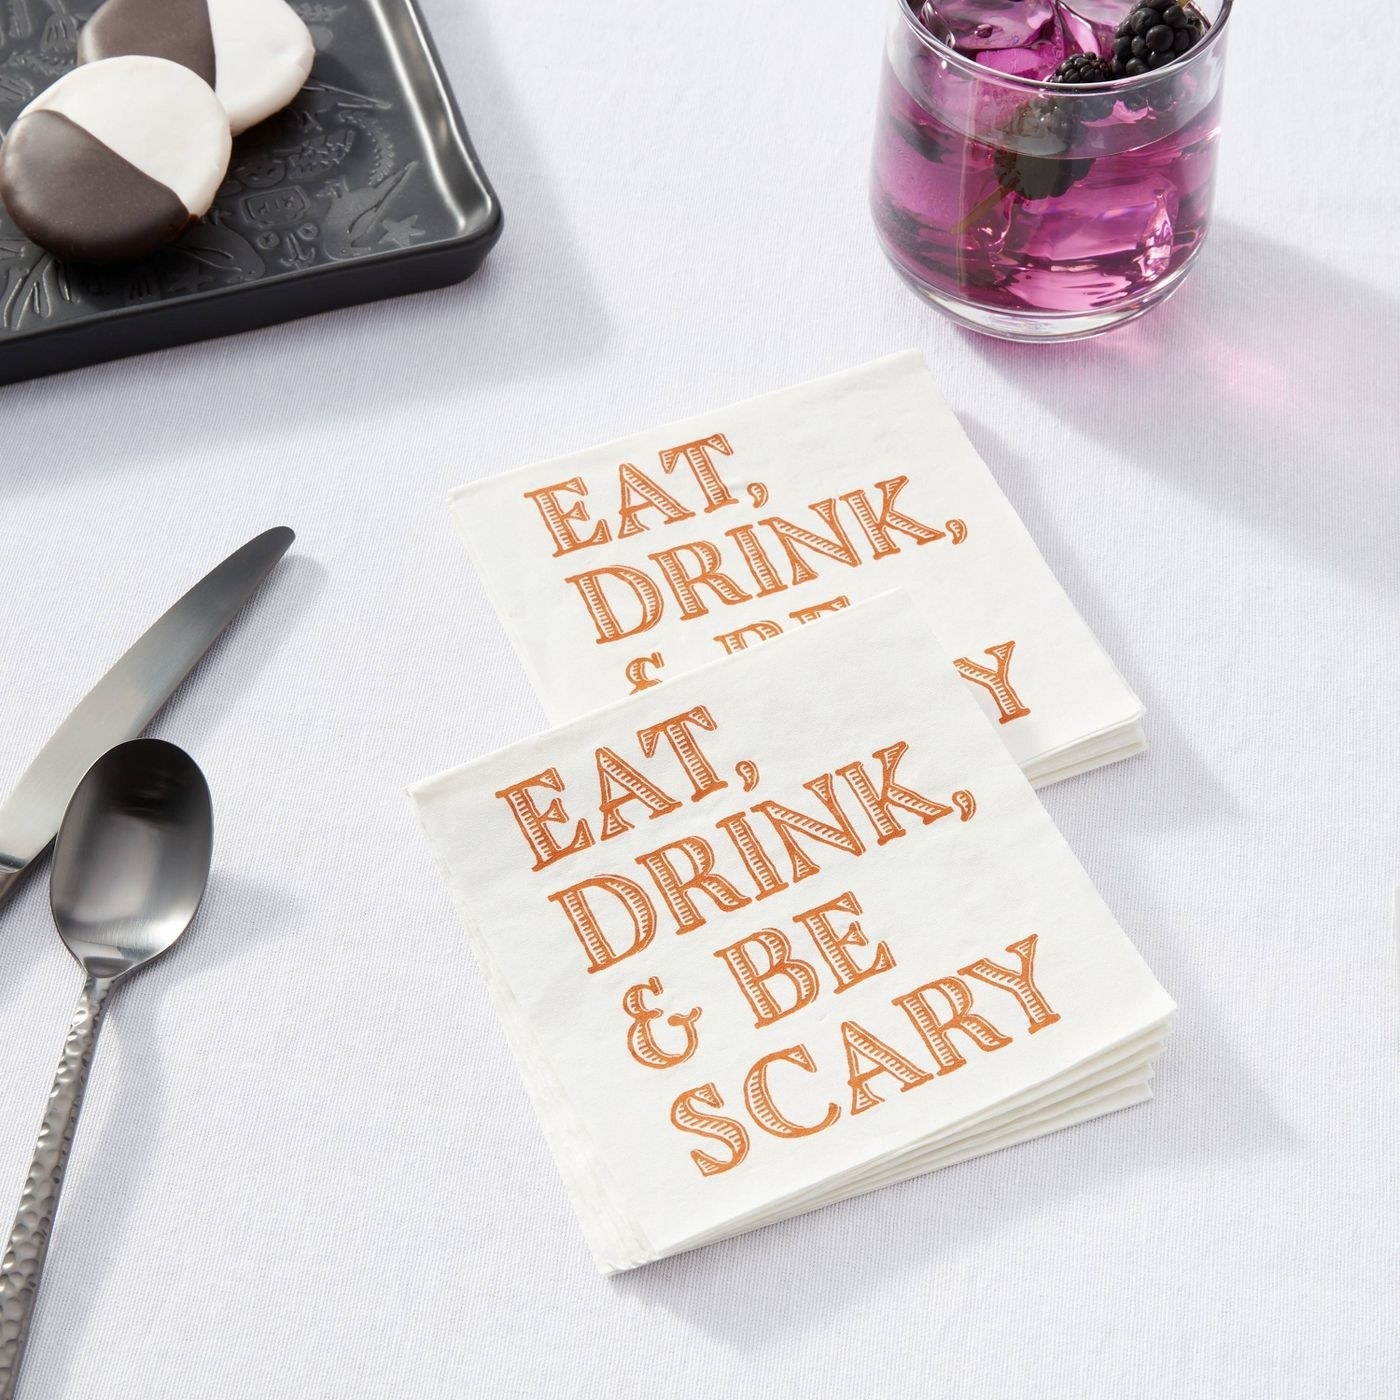 A pack of halloween napkins